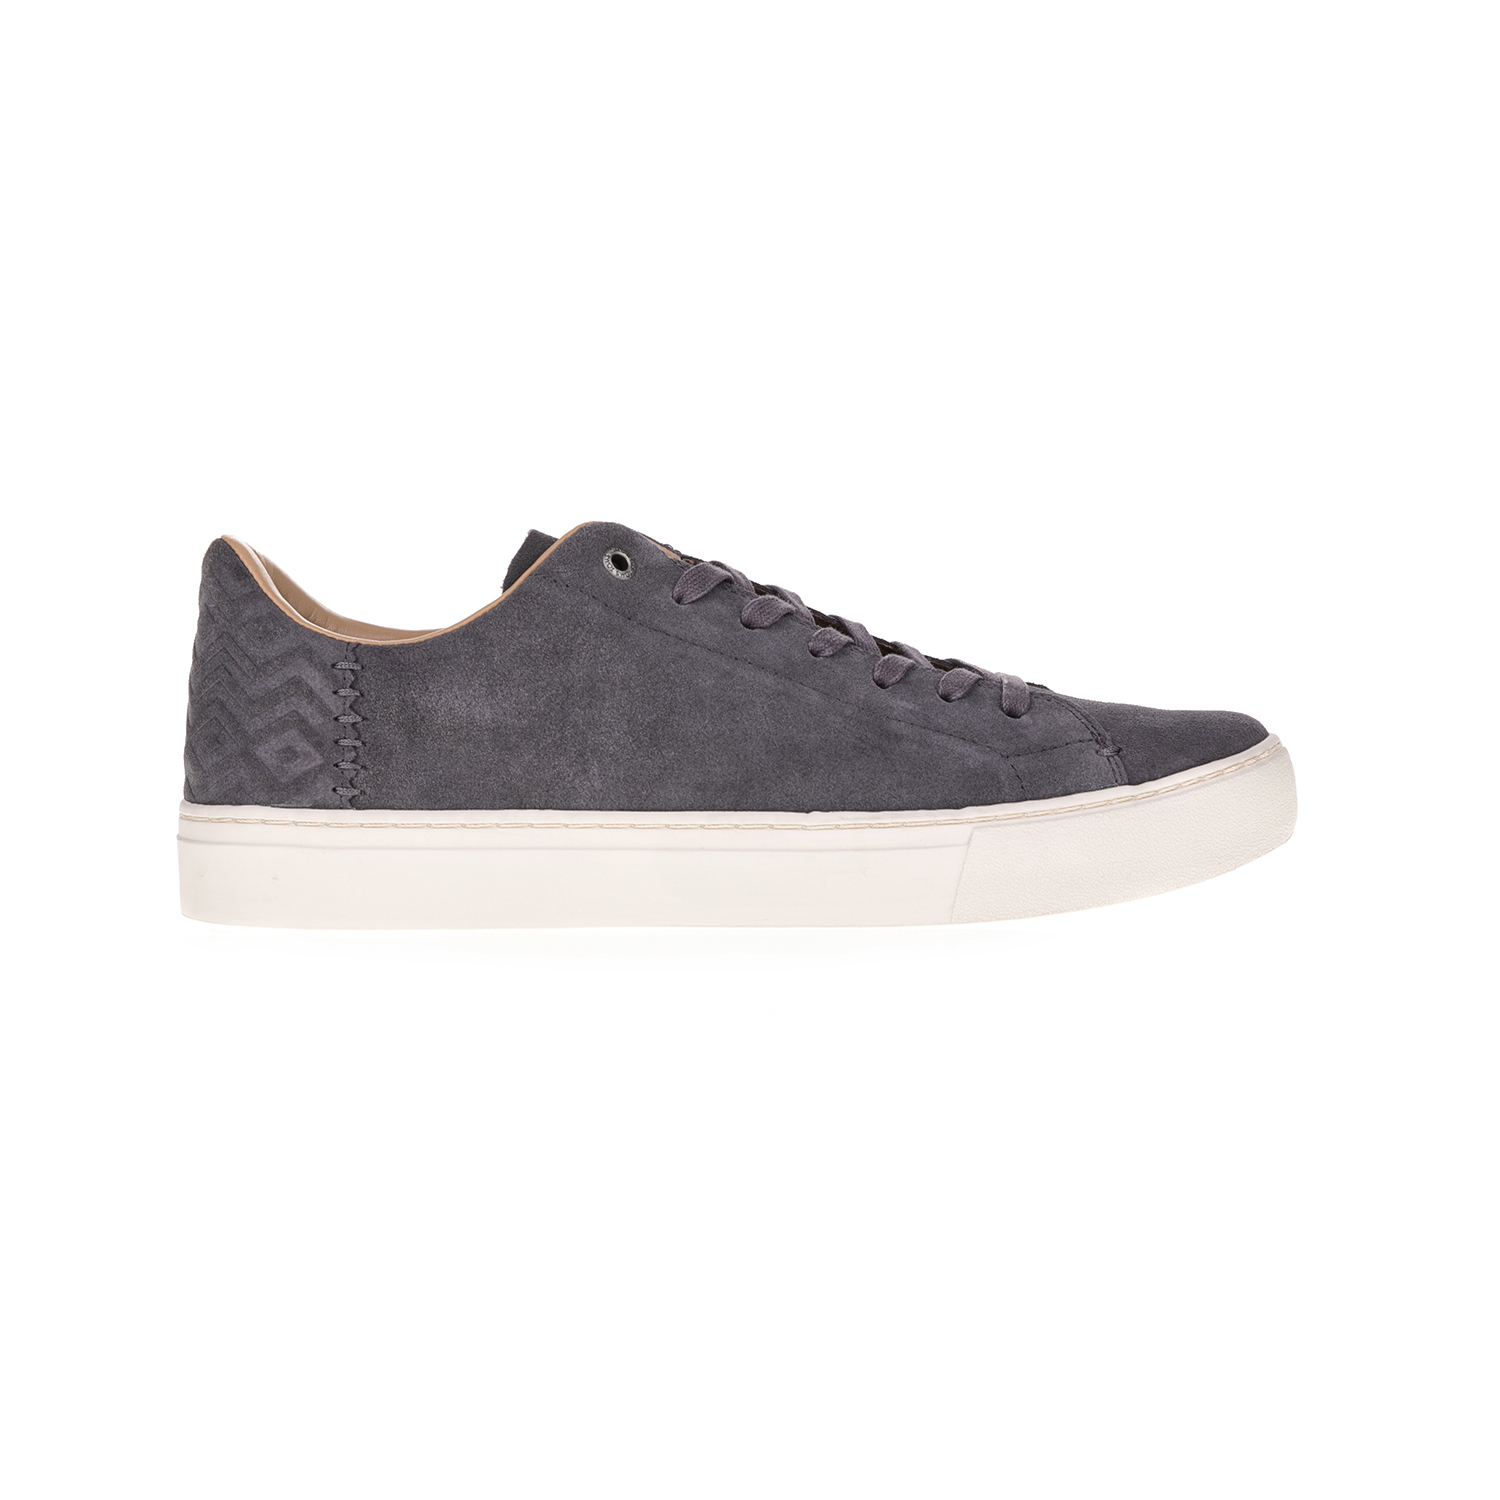 TOMS – Αντρικά sneakers TOMS γκρι